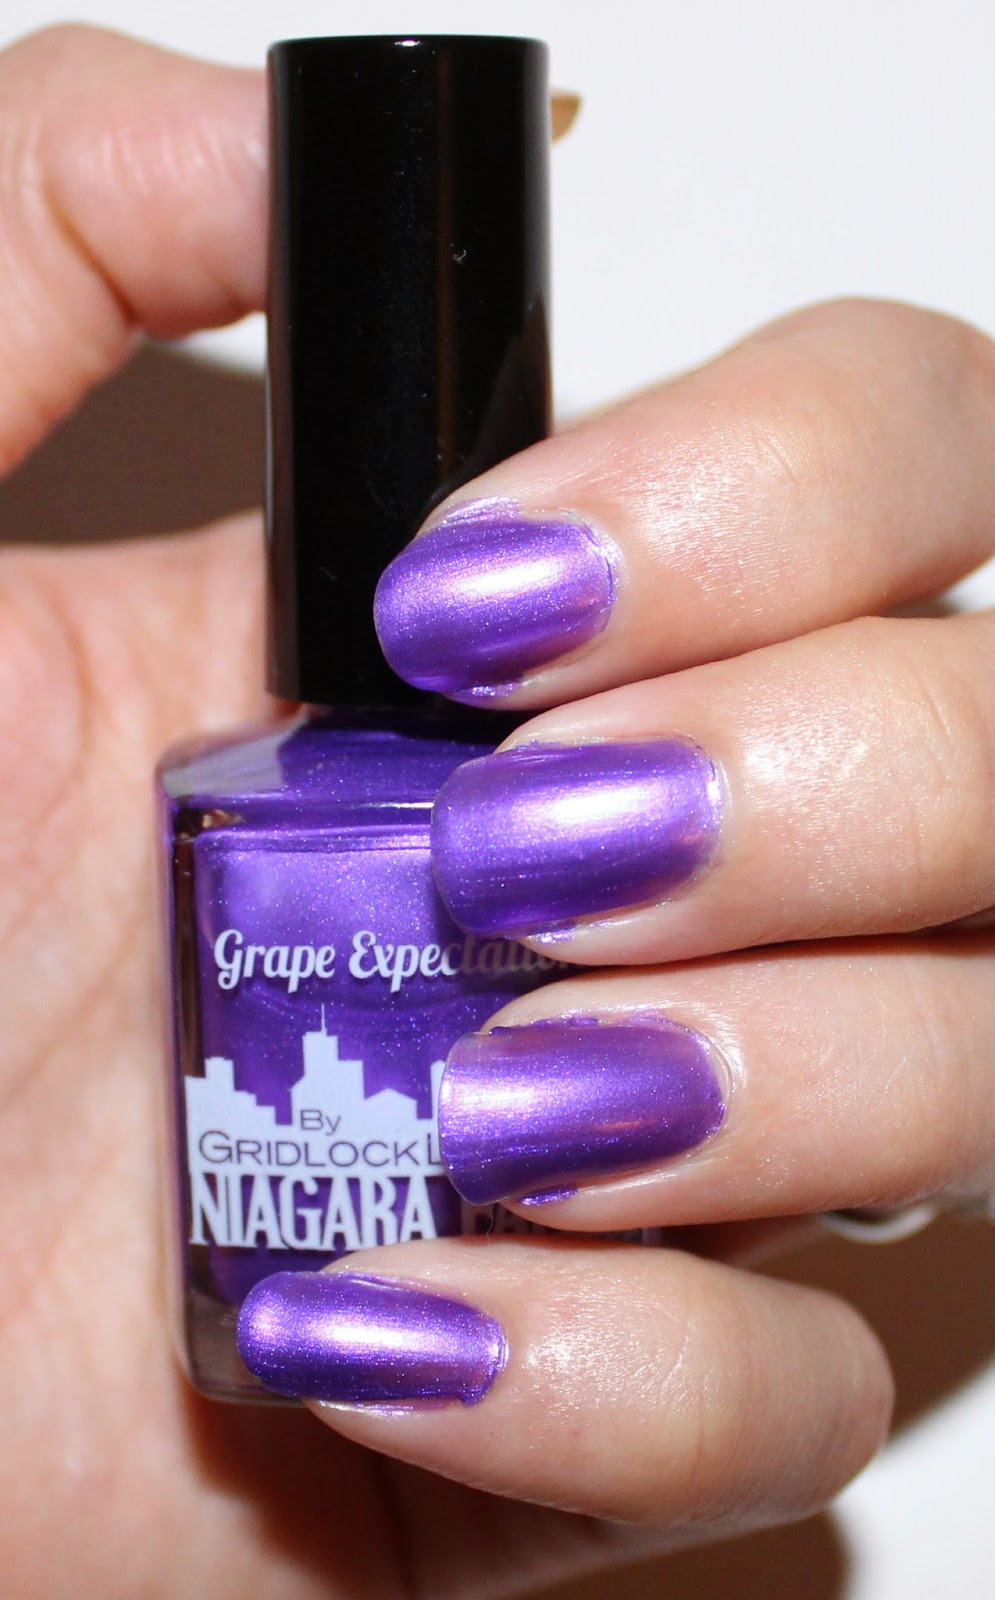 Gridlock Lacquer Grape Expectations